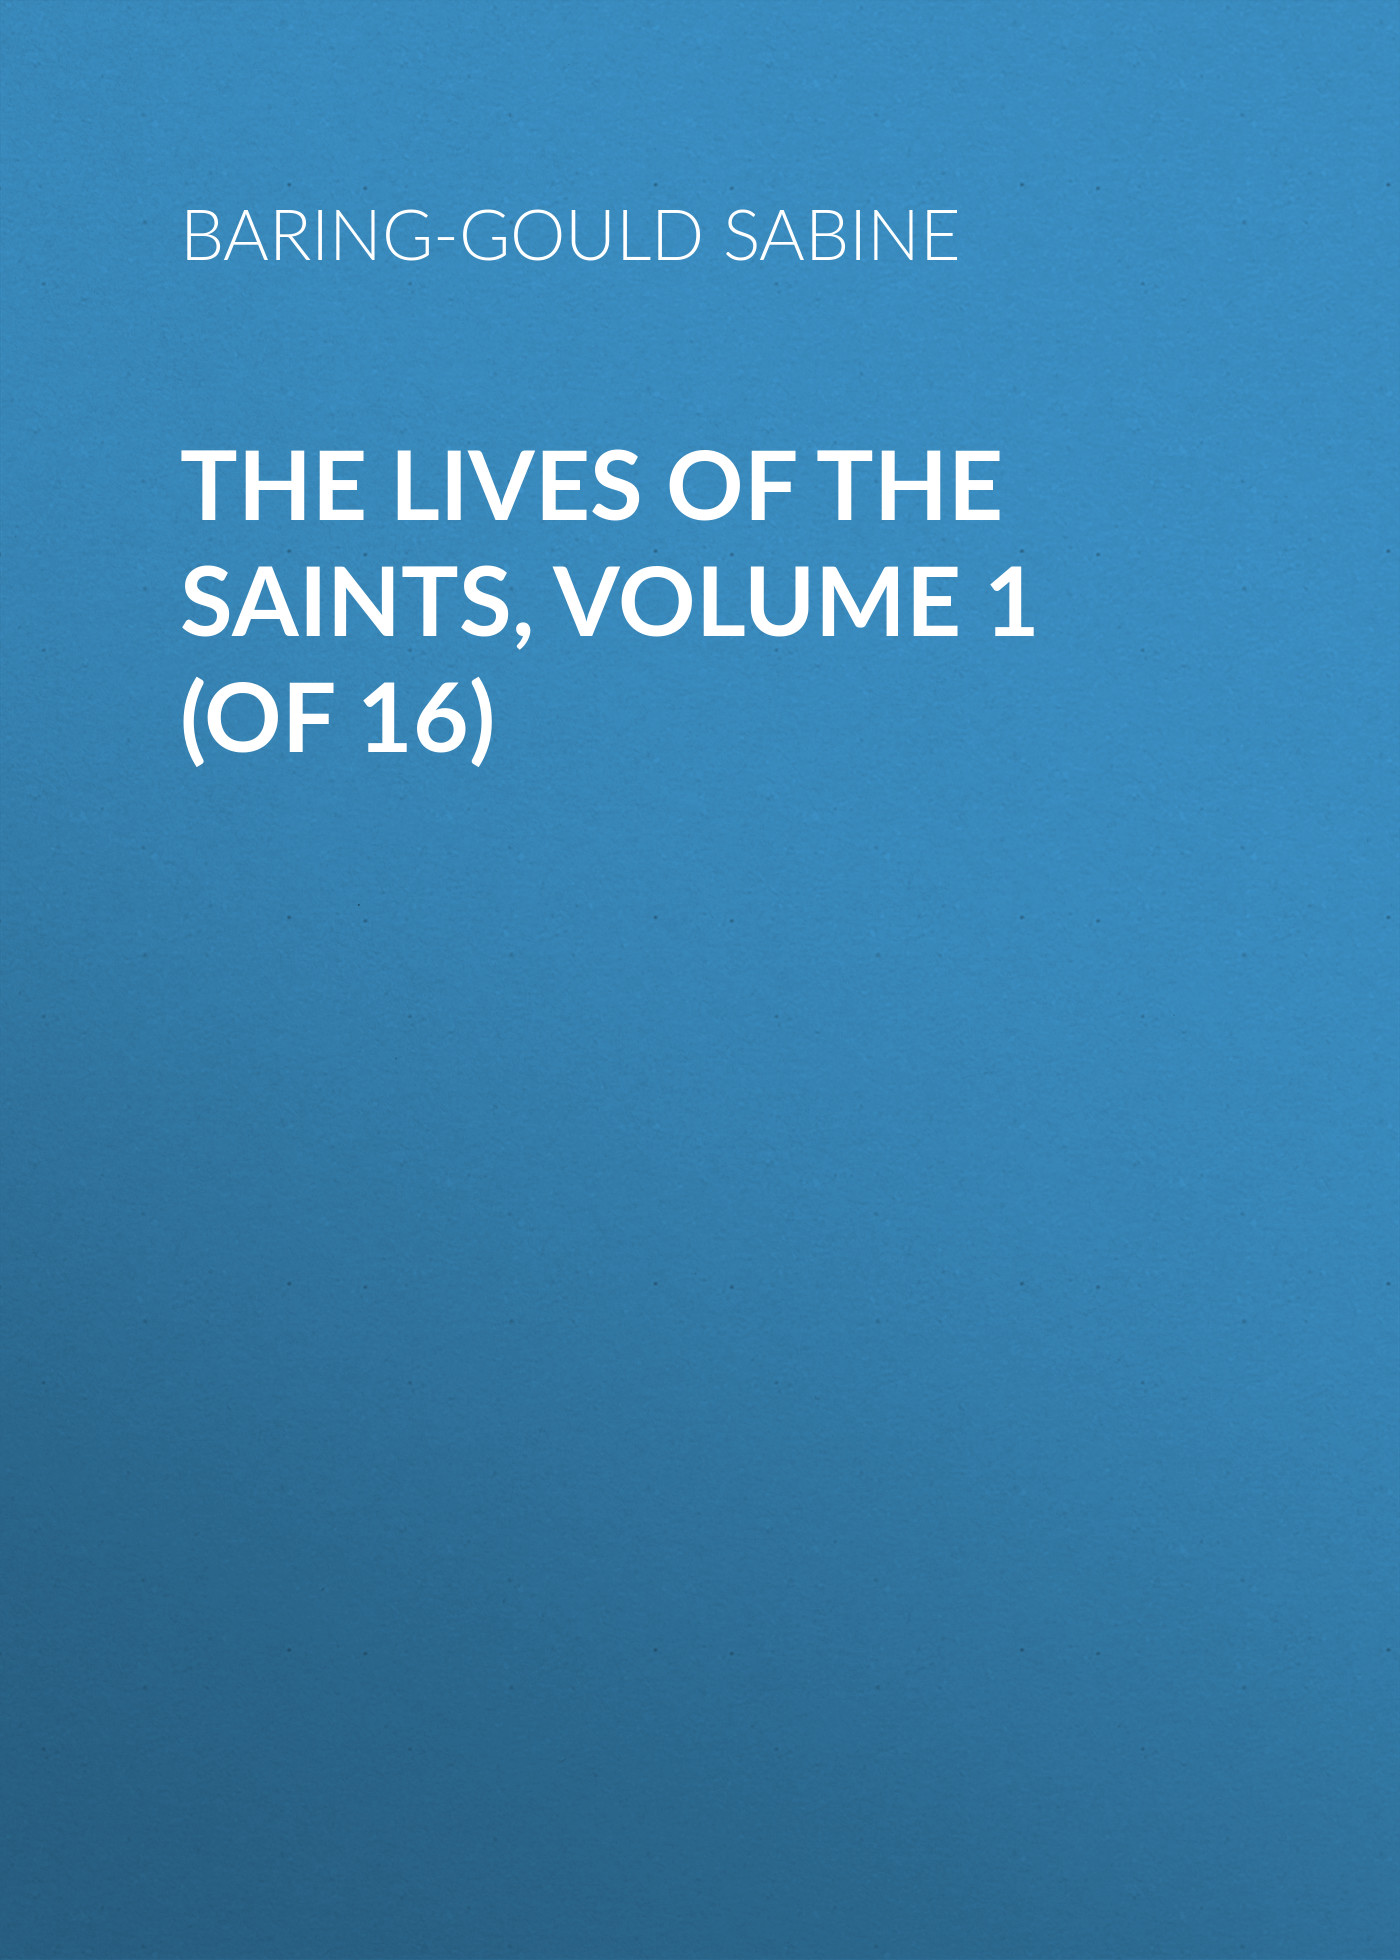 Baring-Gould Sabine The Lives of the Saints, Volume 1 (of 16) baring gould sabine a book of north wales